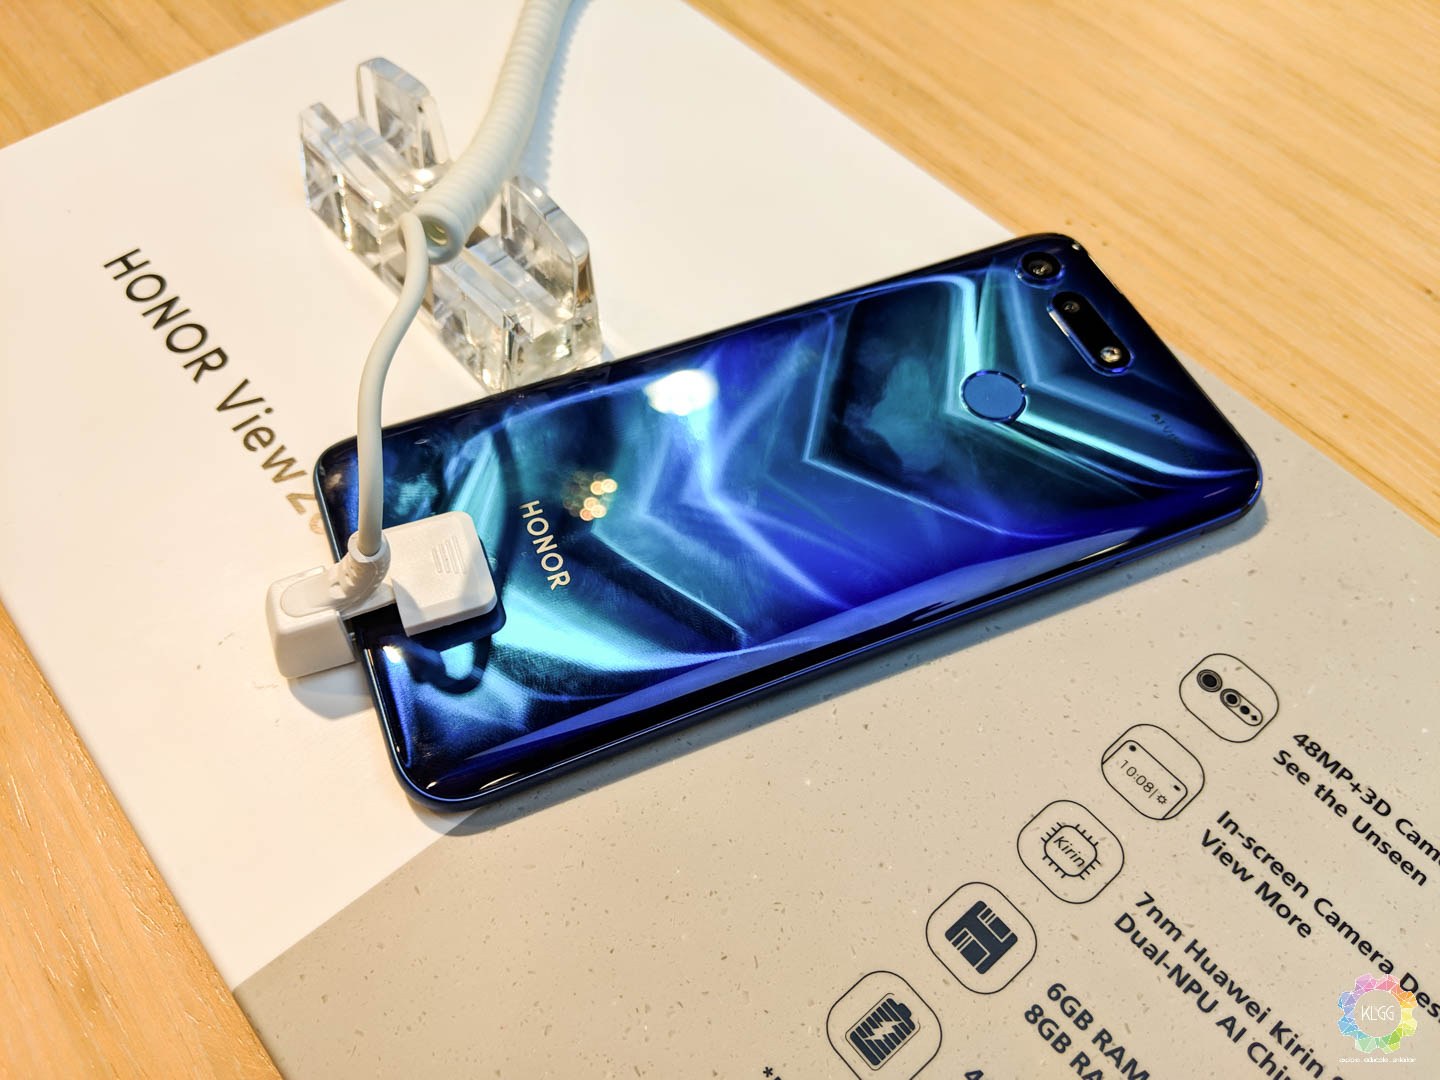 4 Reasons why you shouldn't buy the Honor View 20 - KLGadgetGuy